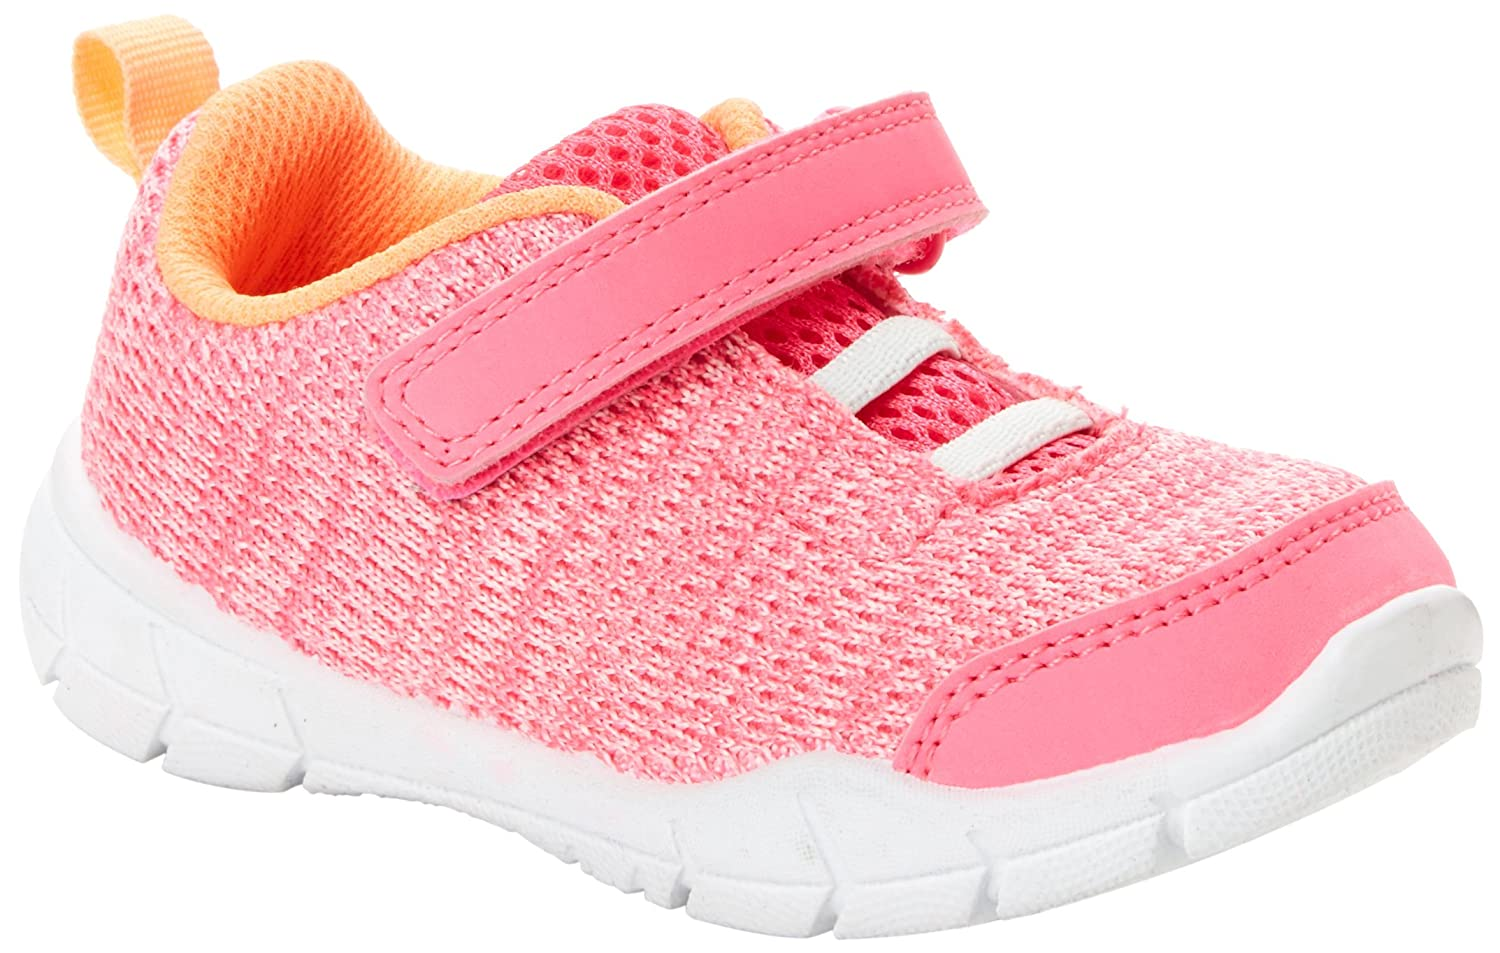 Simple Joys by Carter's Little Kid (4-8 Years) and Toddler (1-4 Years) Girls' Knitted Athletic Sneaker Simple Joys by Carter's JODYNN-GJR